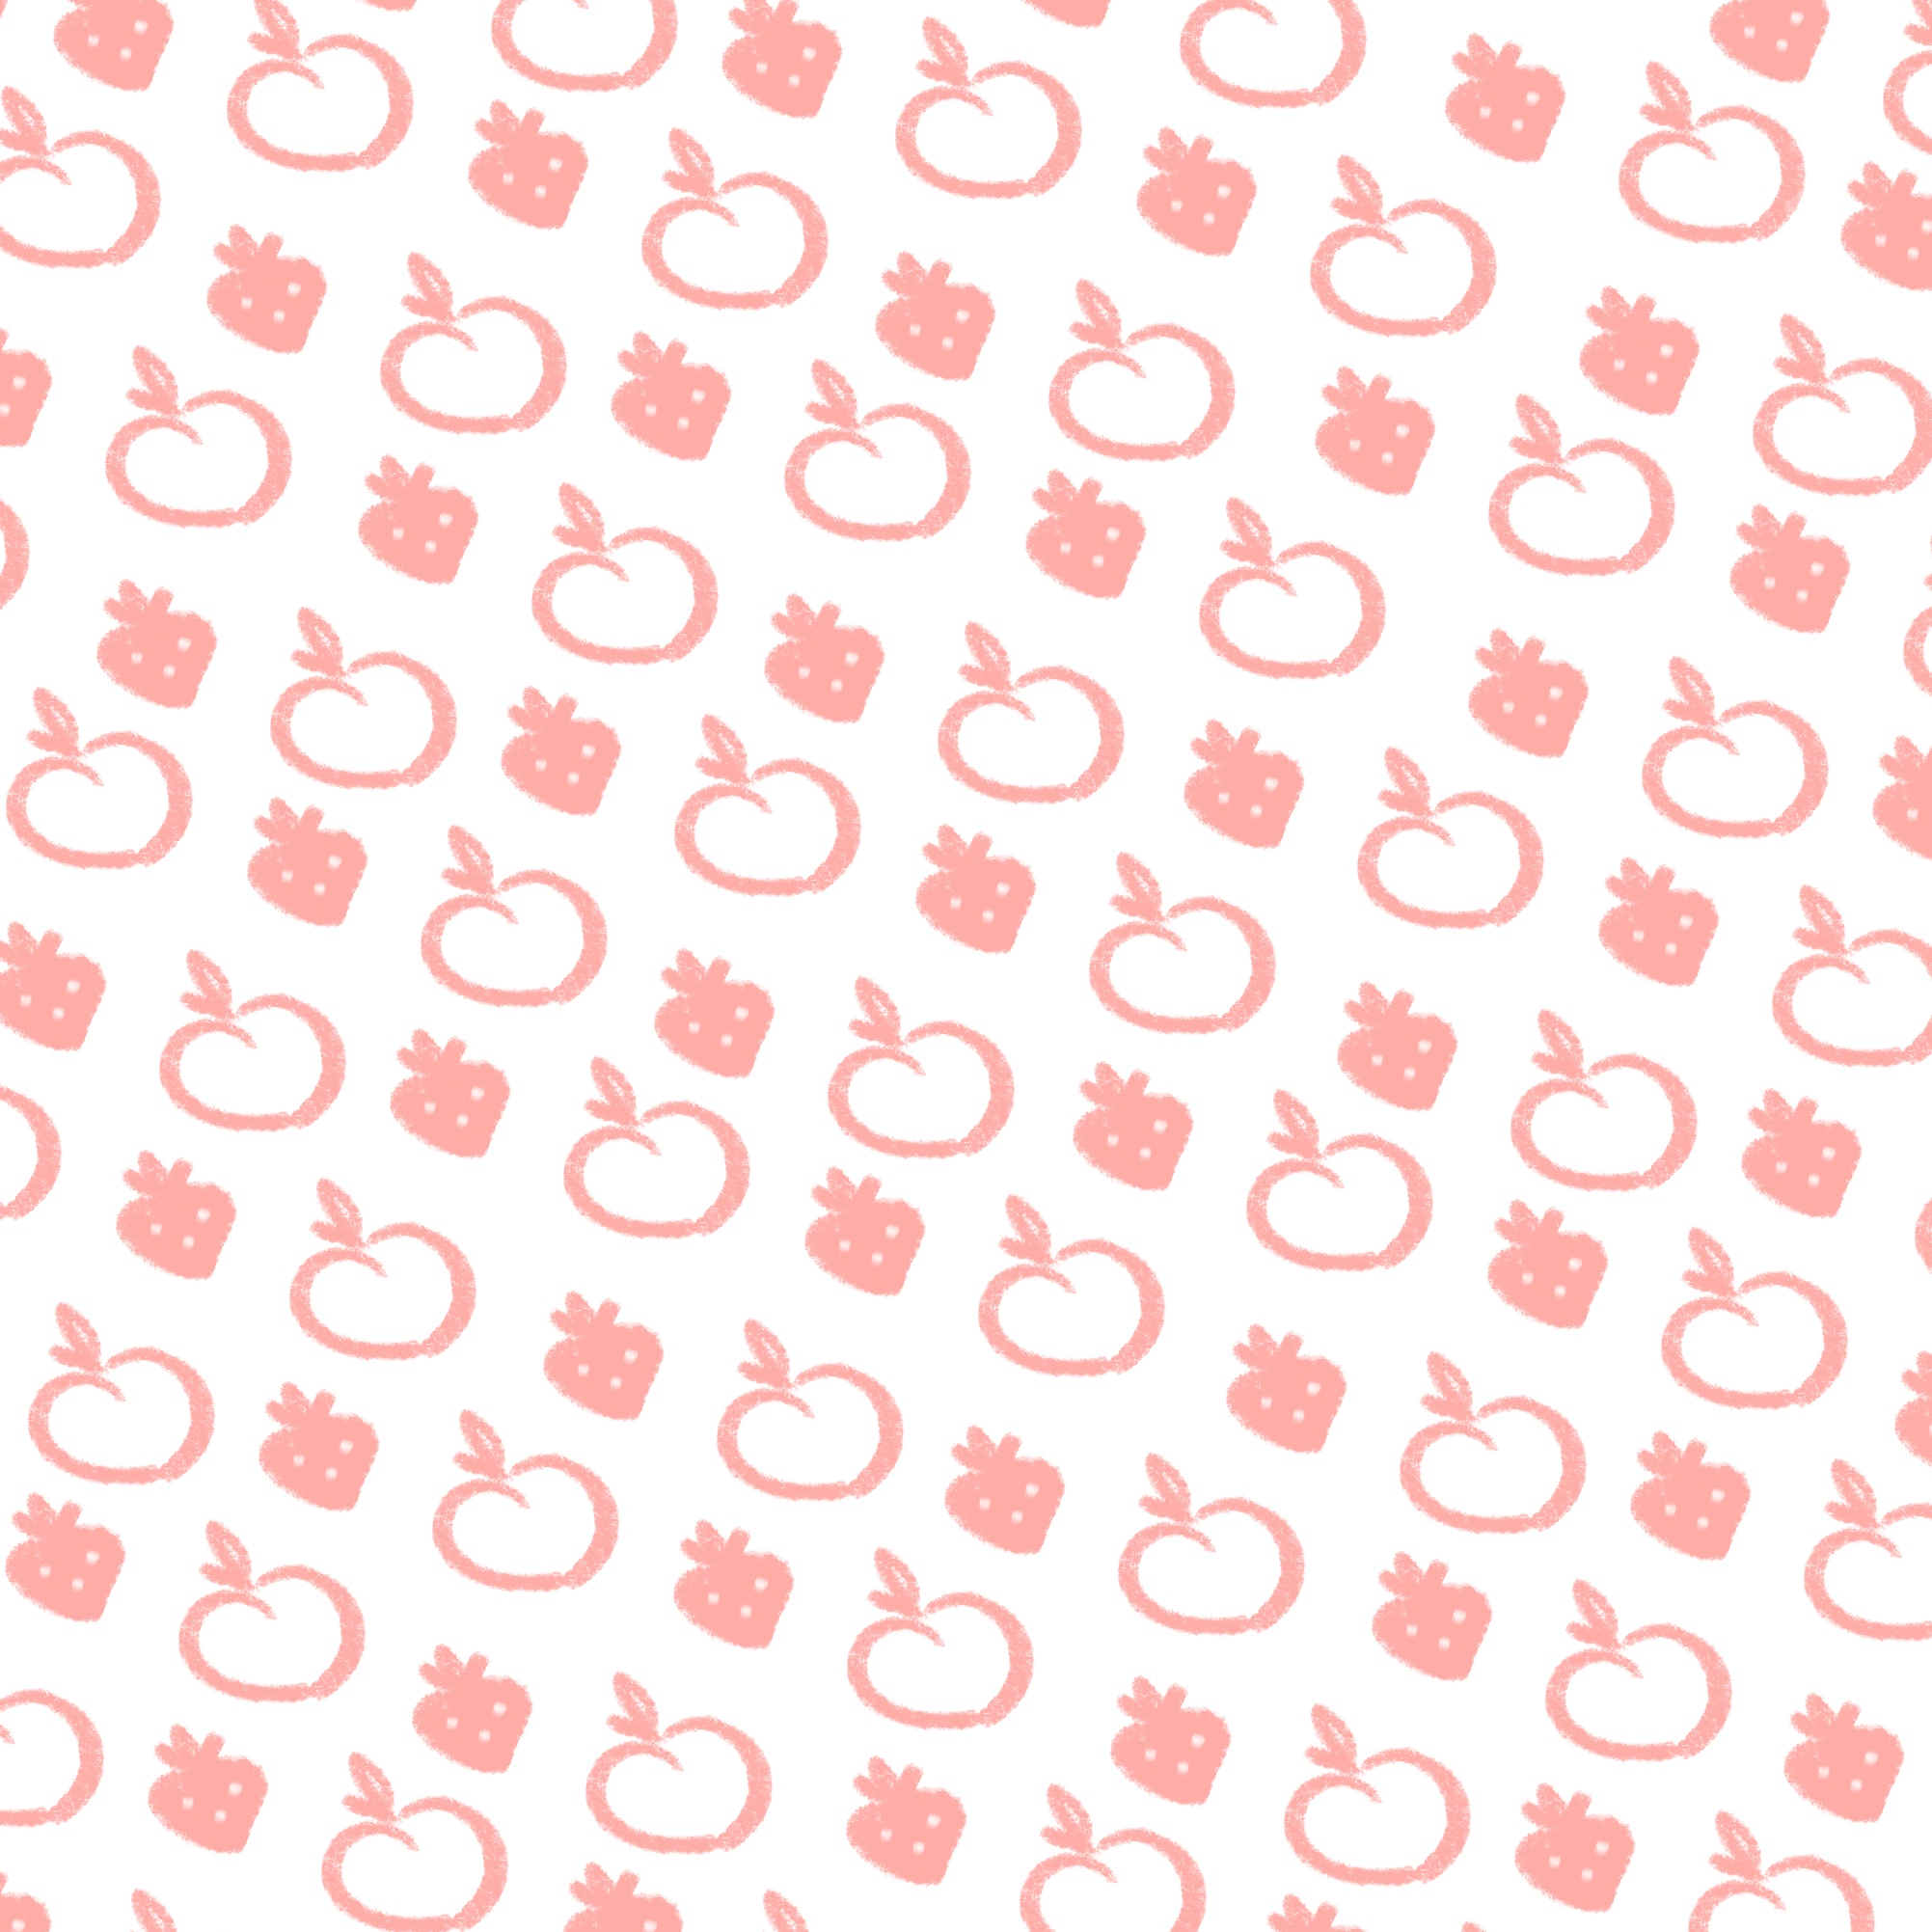 Simple pink and white repeating pattern of strawberry and peach